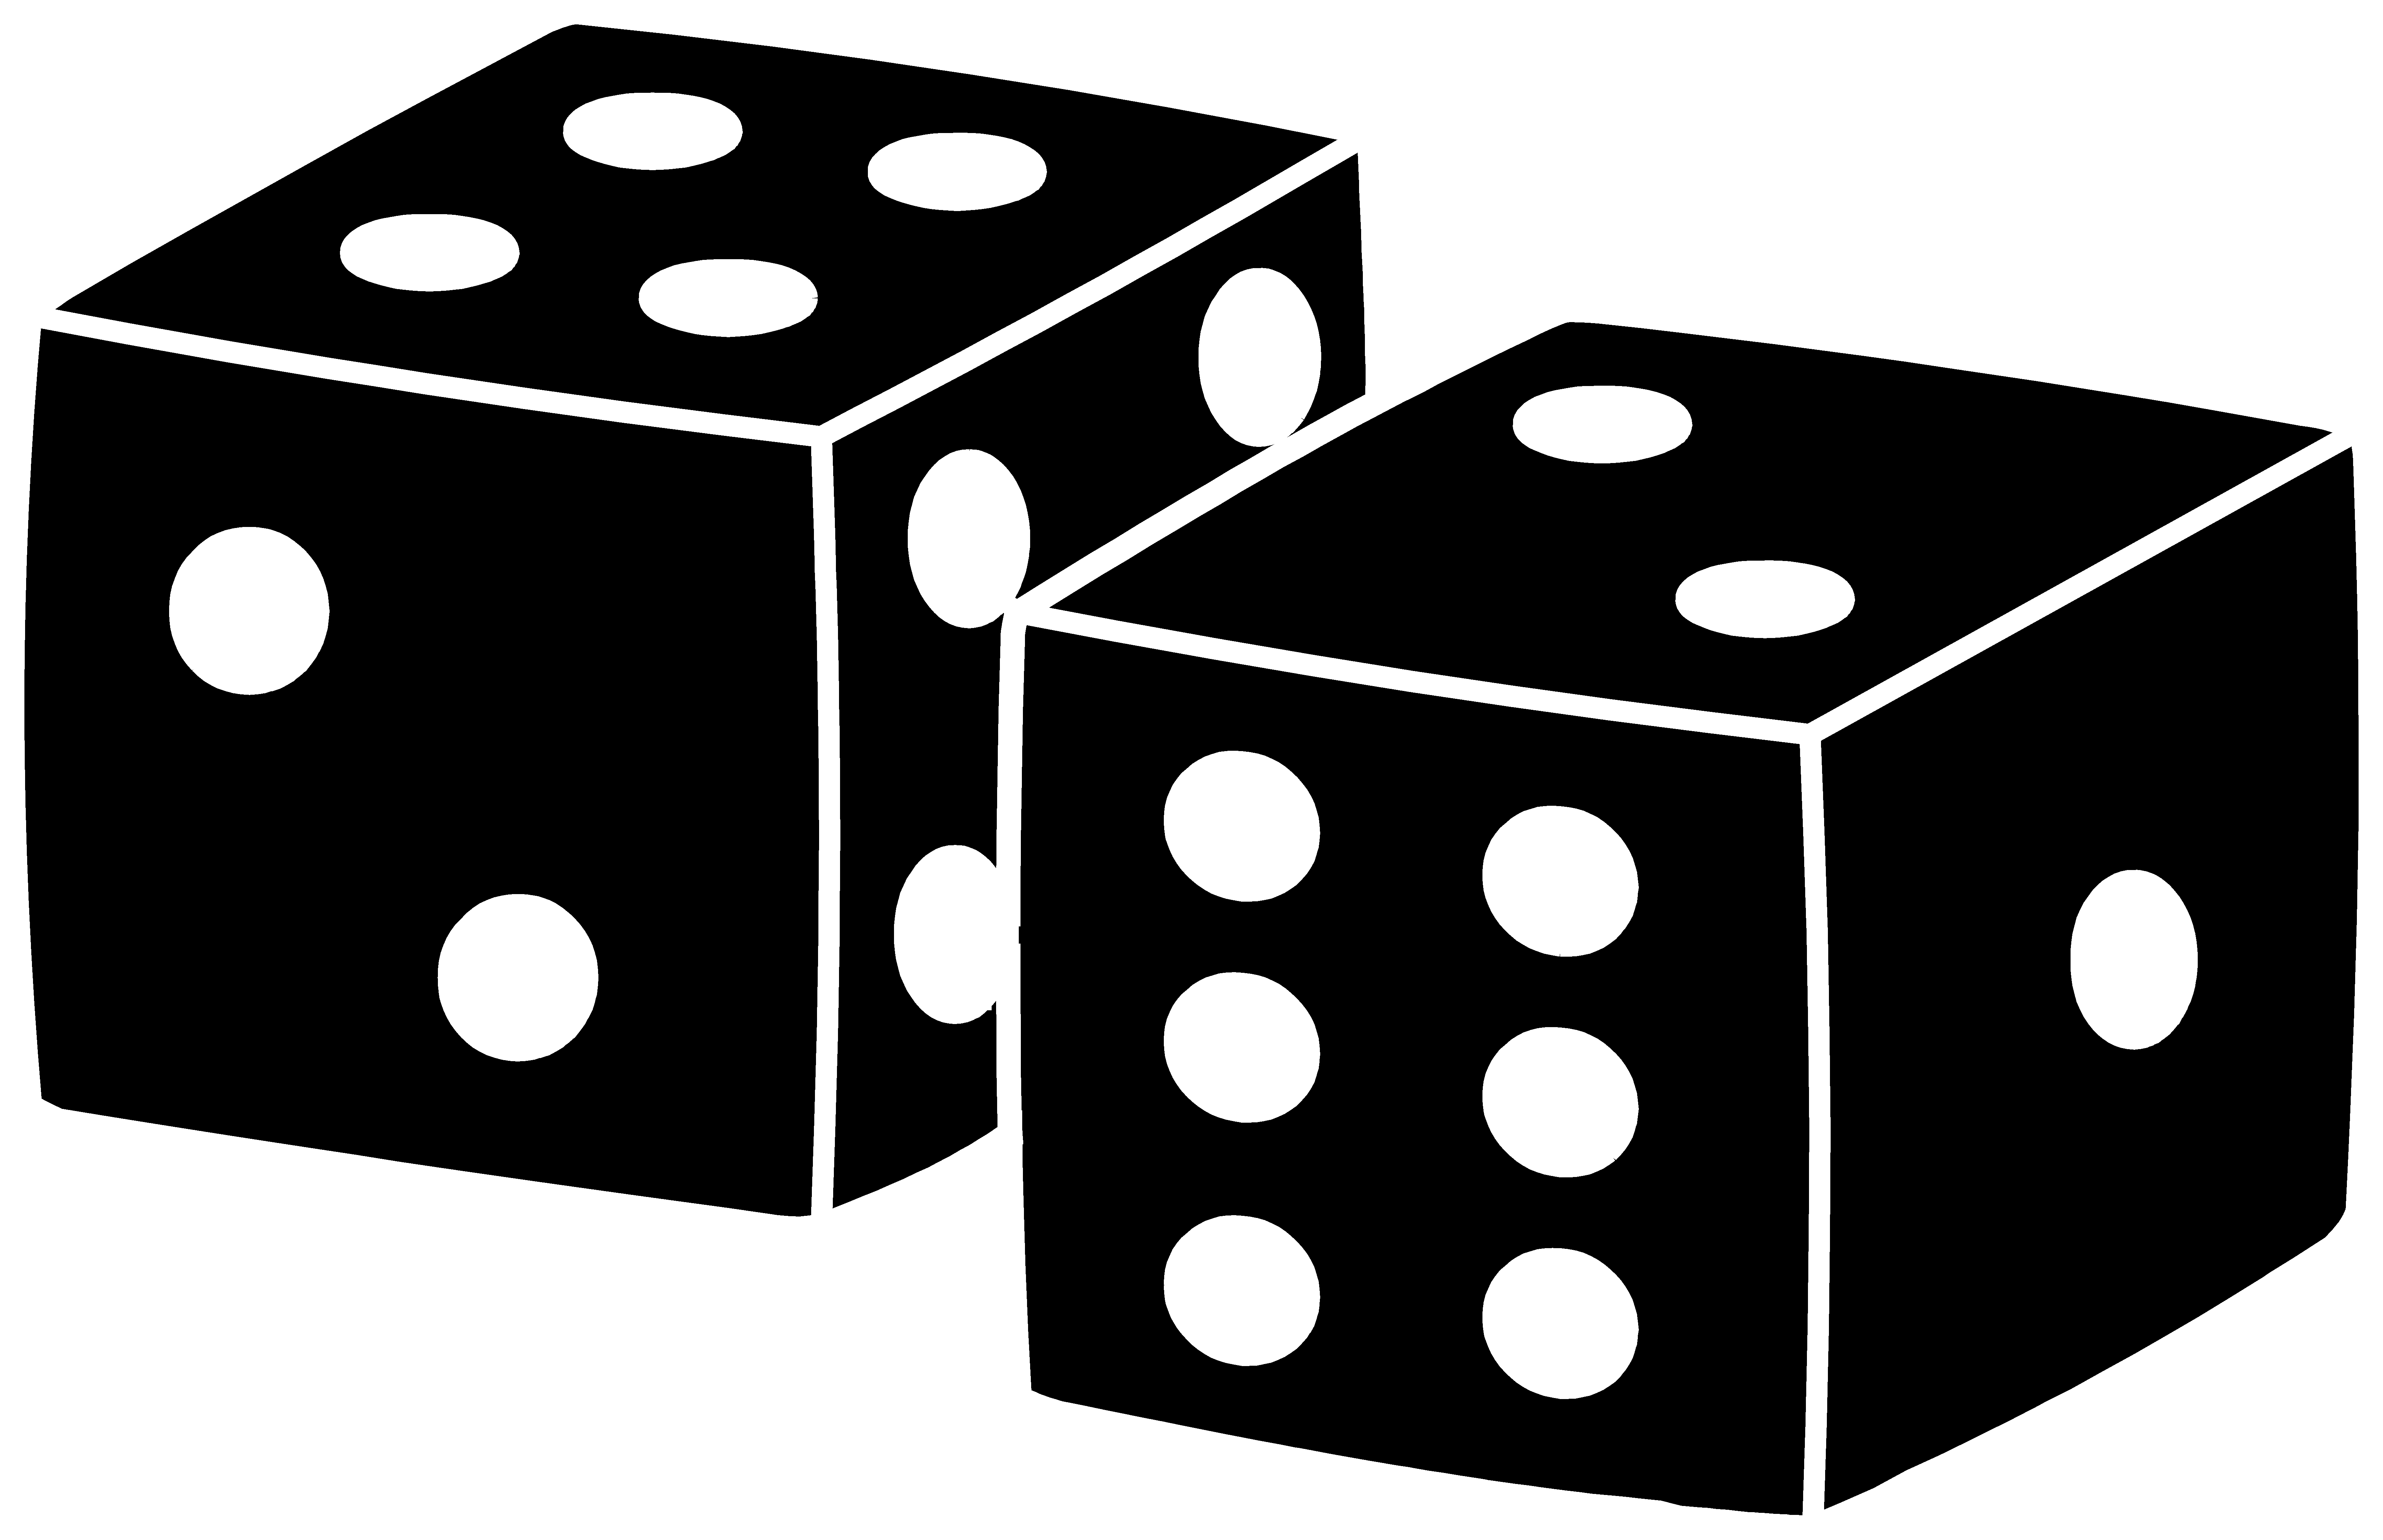 vector royalty free Board game clipart black and white. Dice fototo me